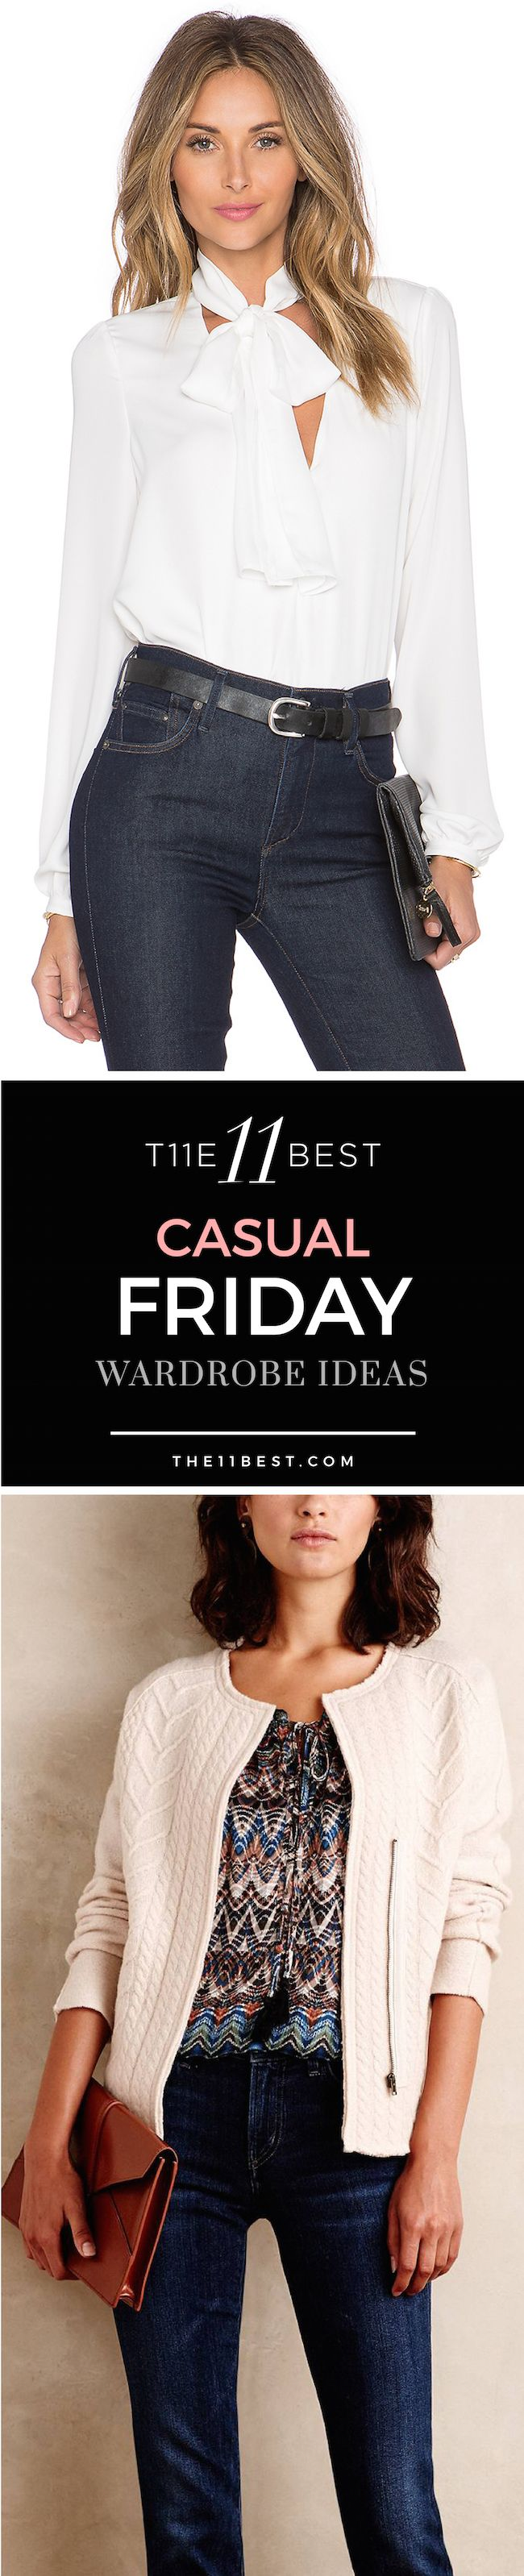 The 11 Best Casual Friday Outfit Ideas